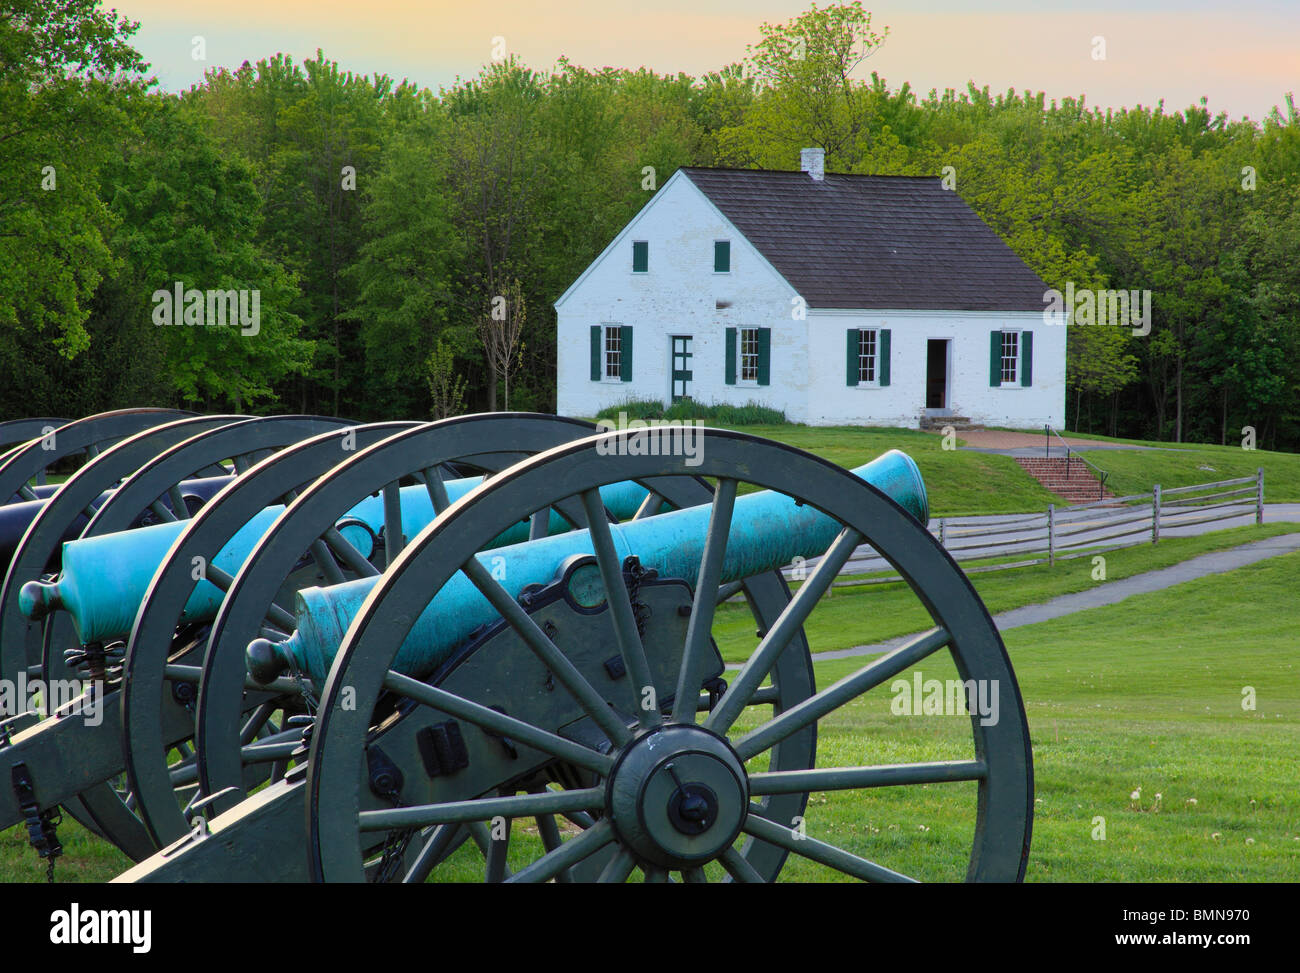 Cannons and Dunker Church, Antietam National Battlefield, Sharpsburg, Maryland, USA - Stock Image